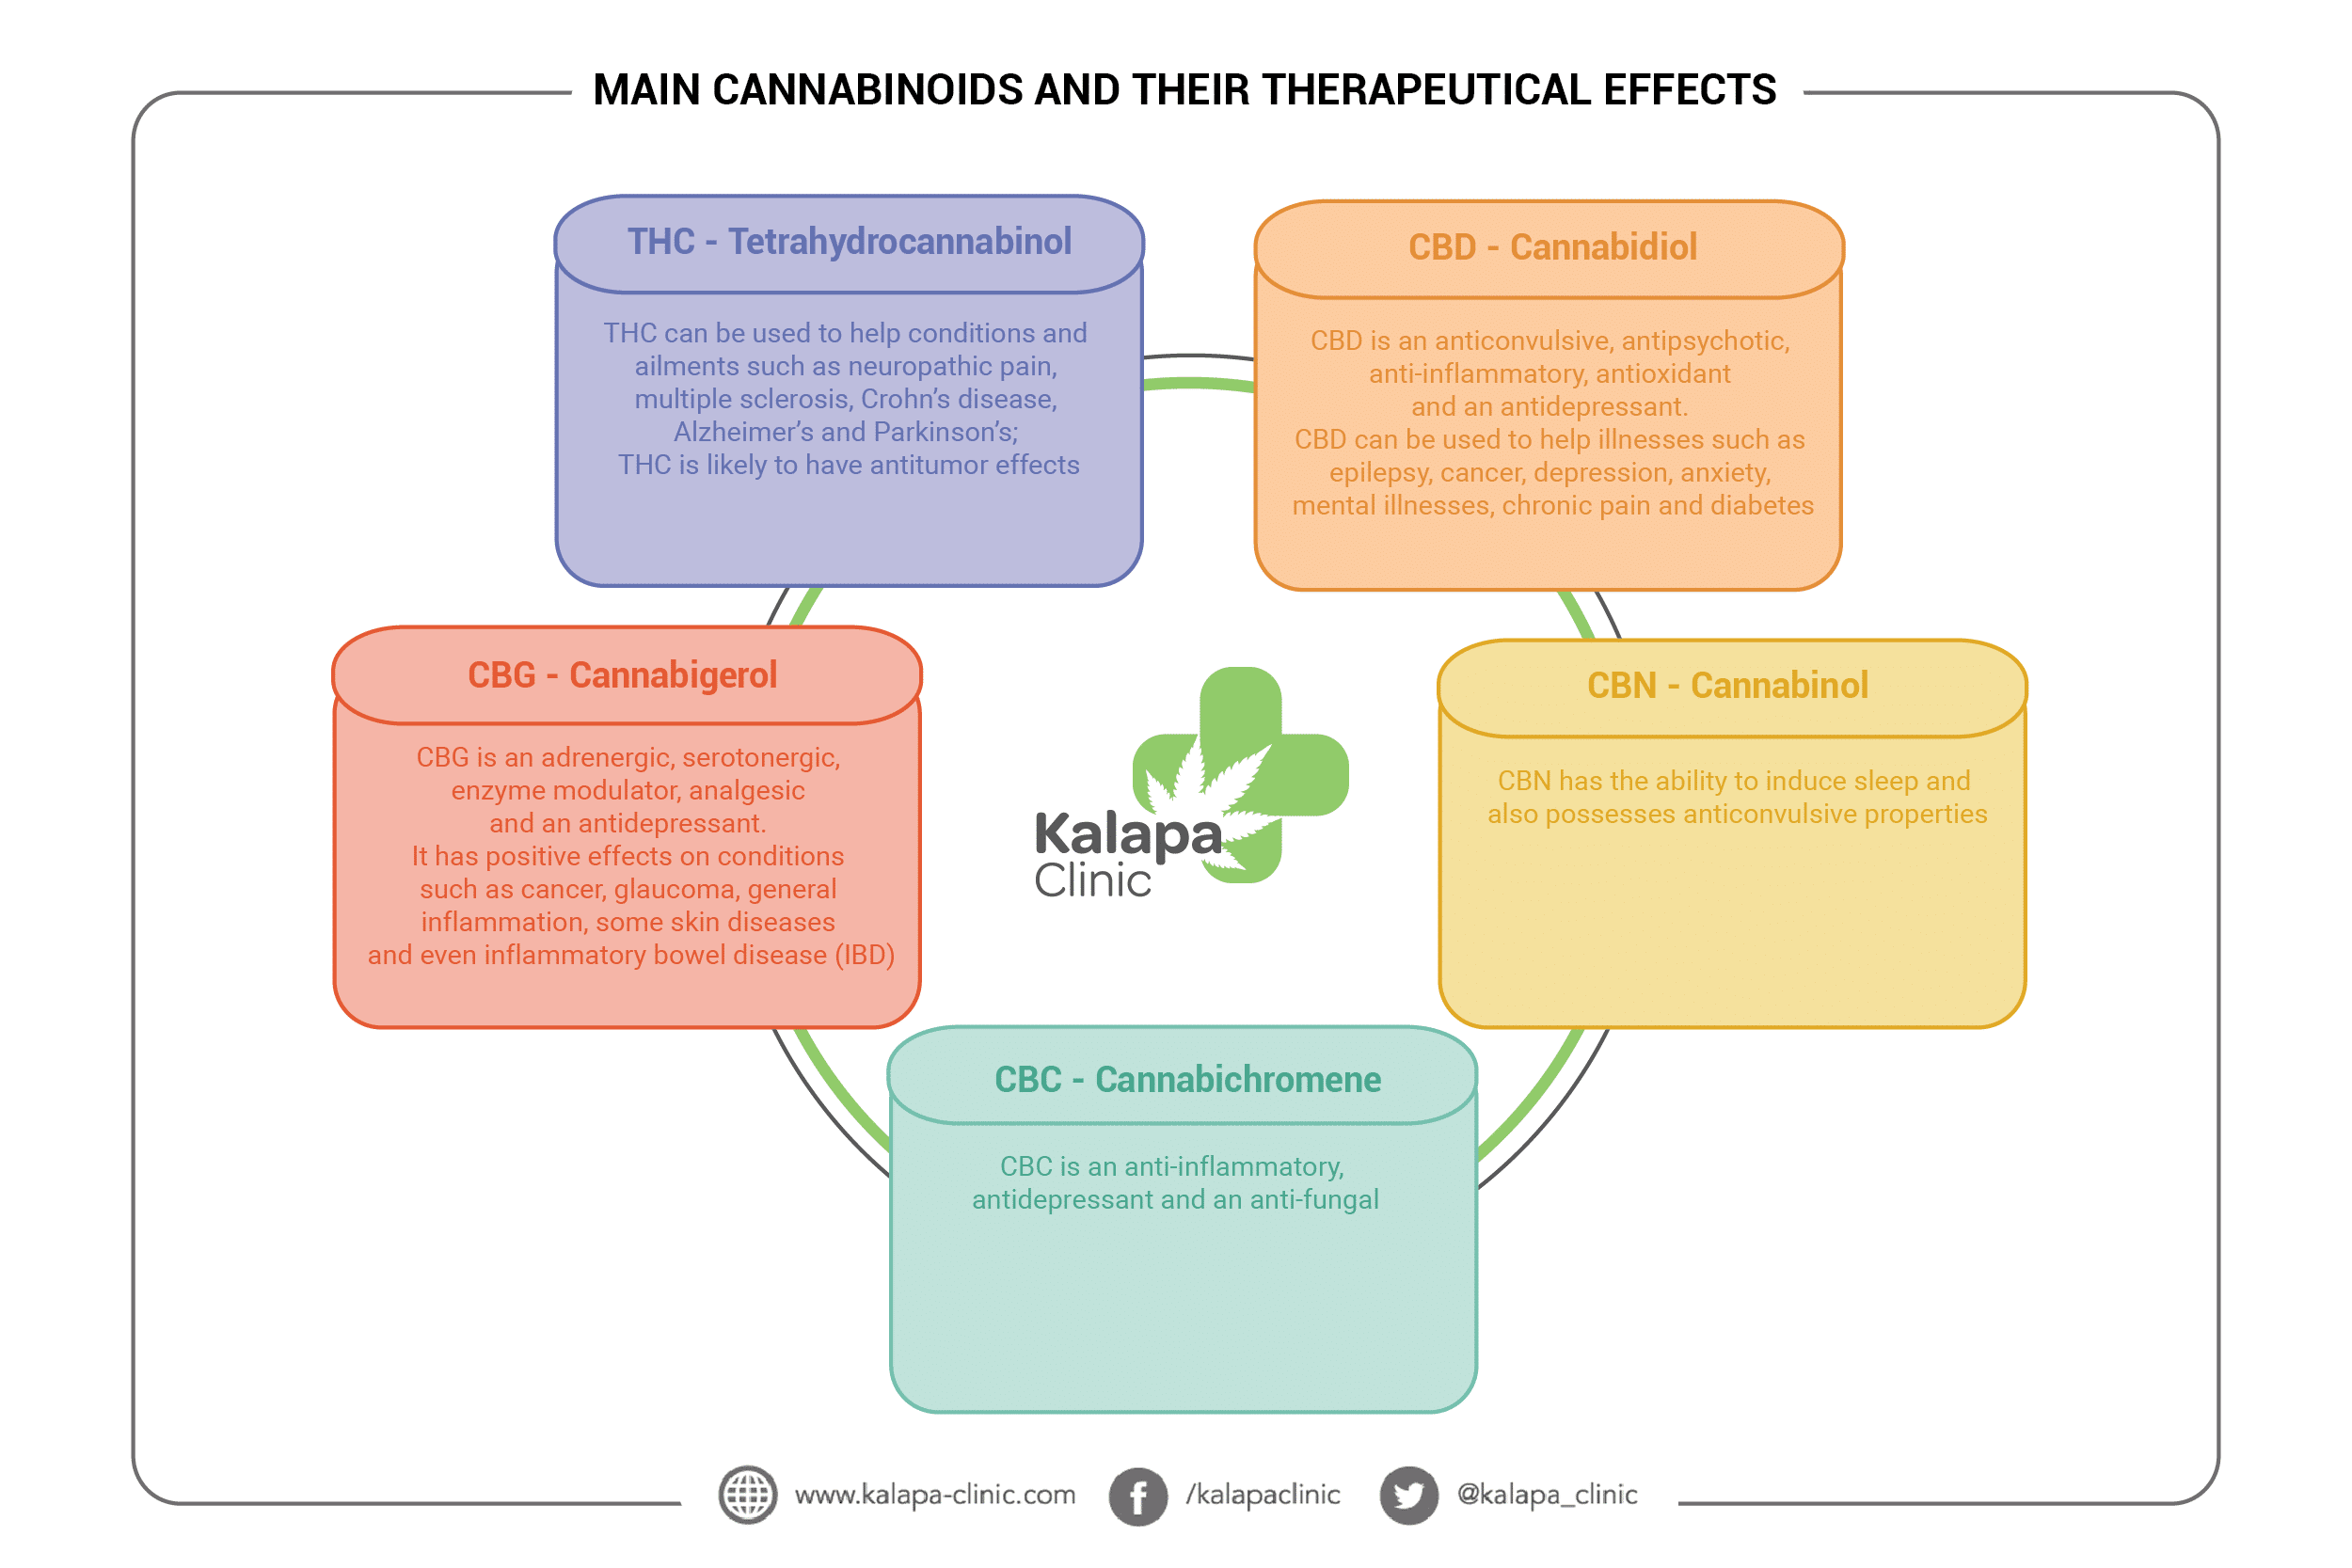 the main cannabinoids and their therapeutic effects